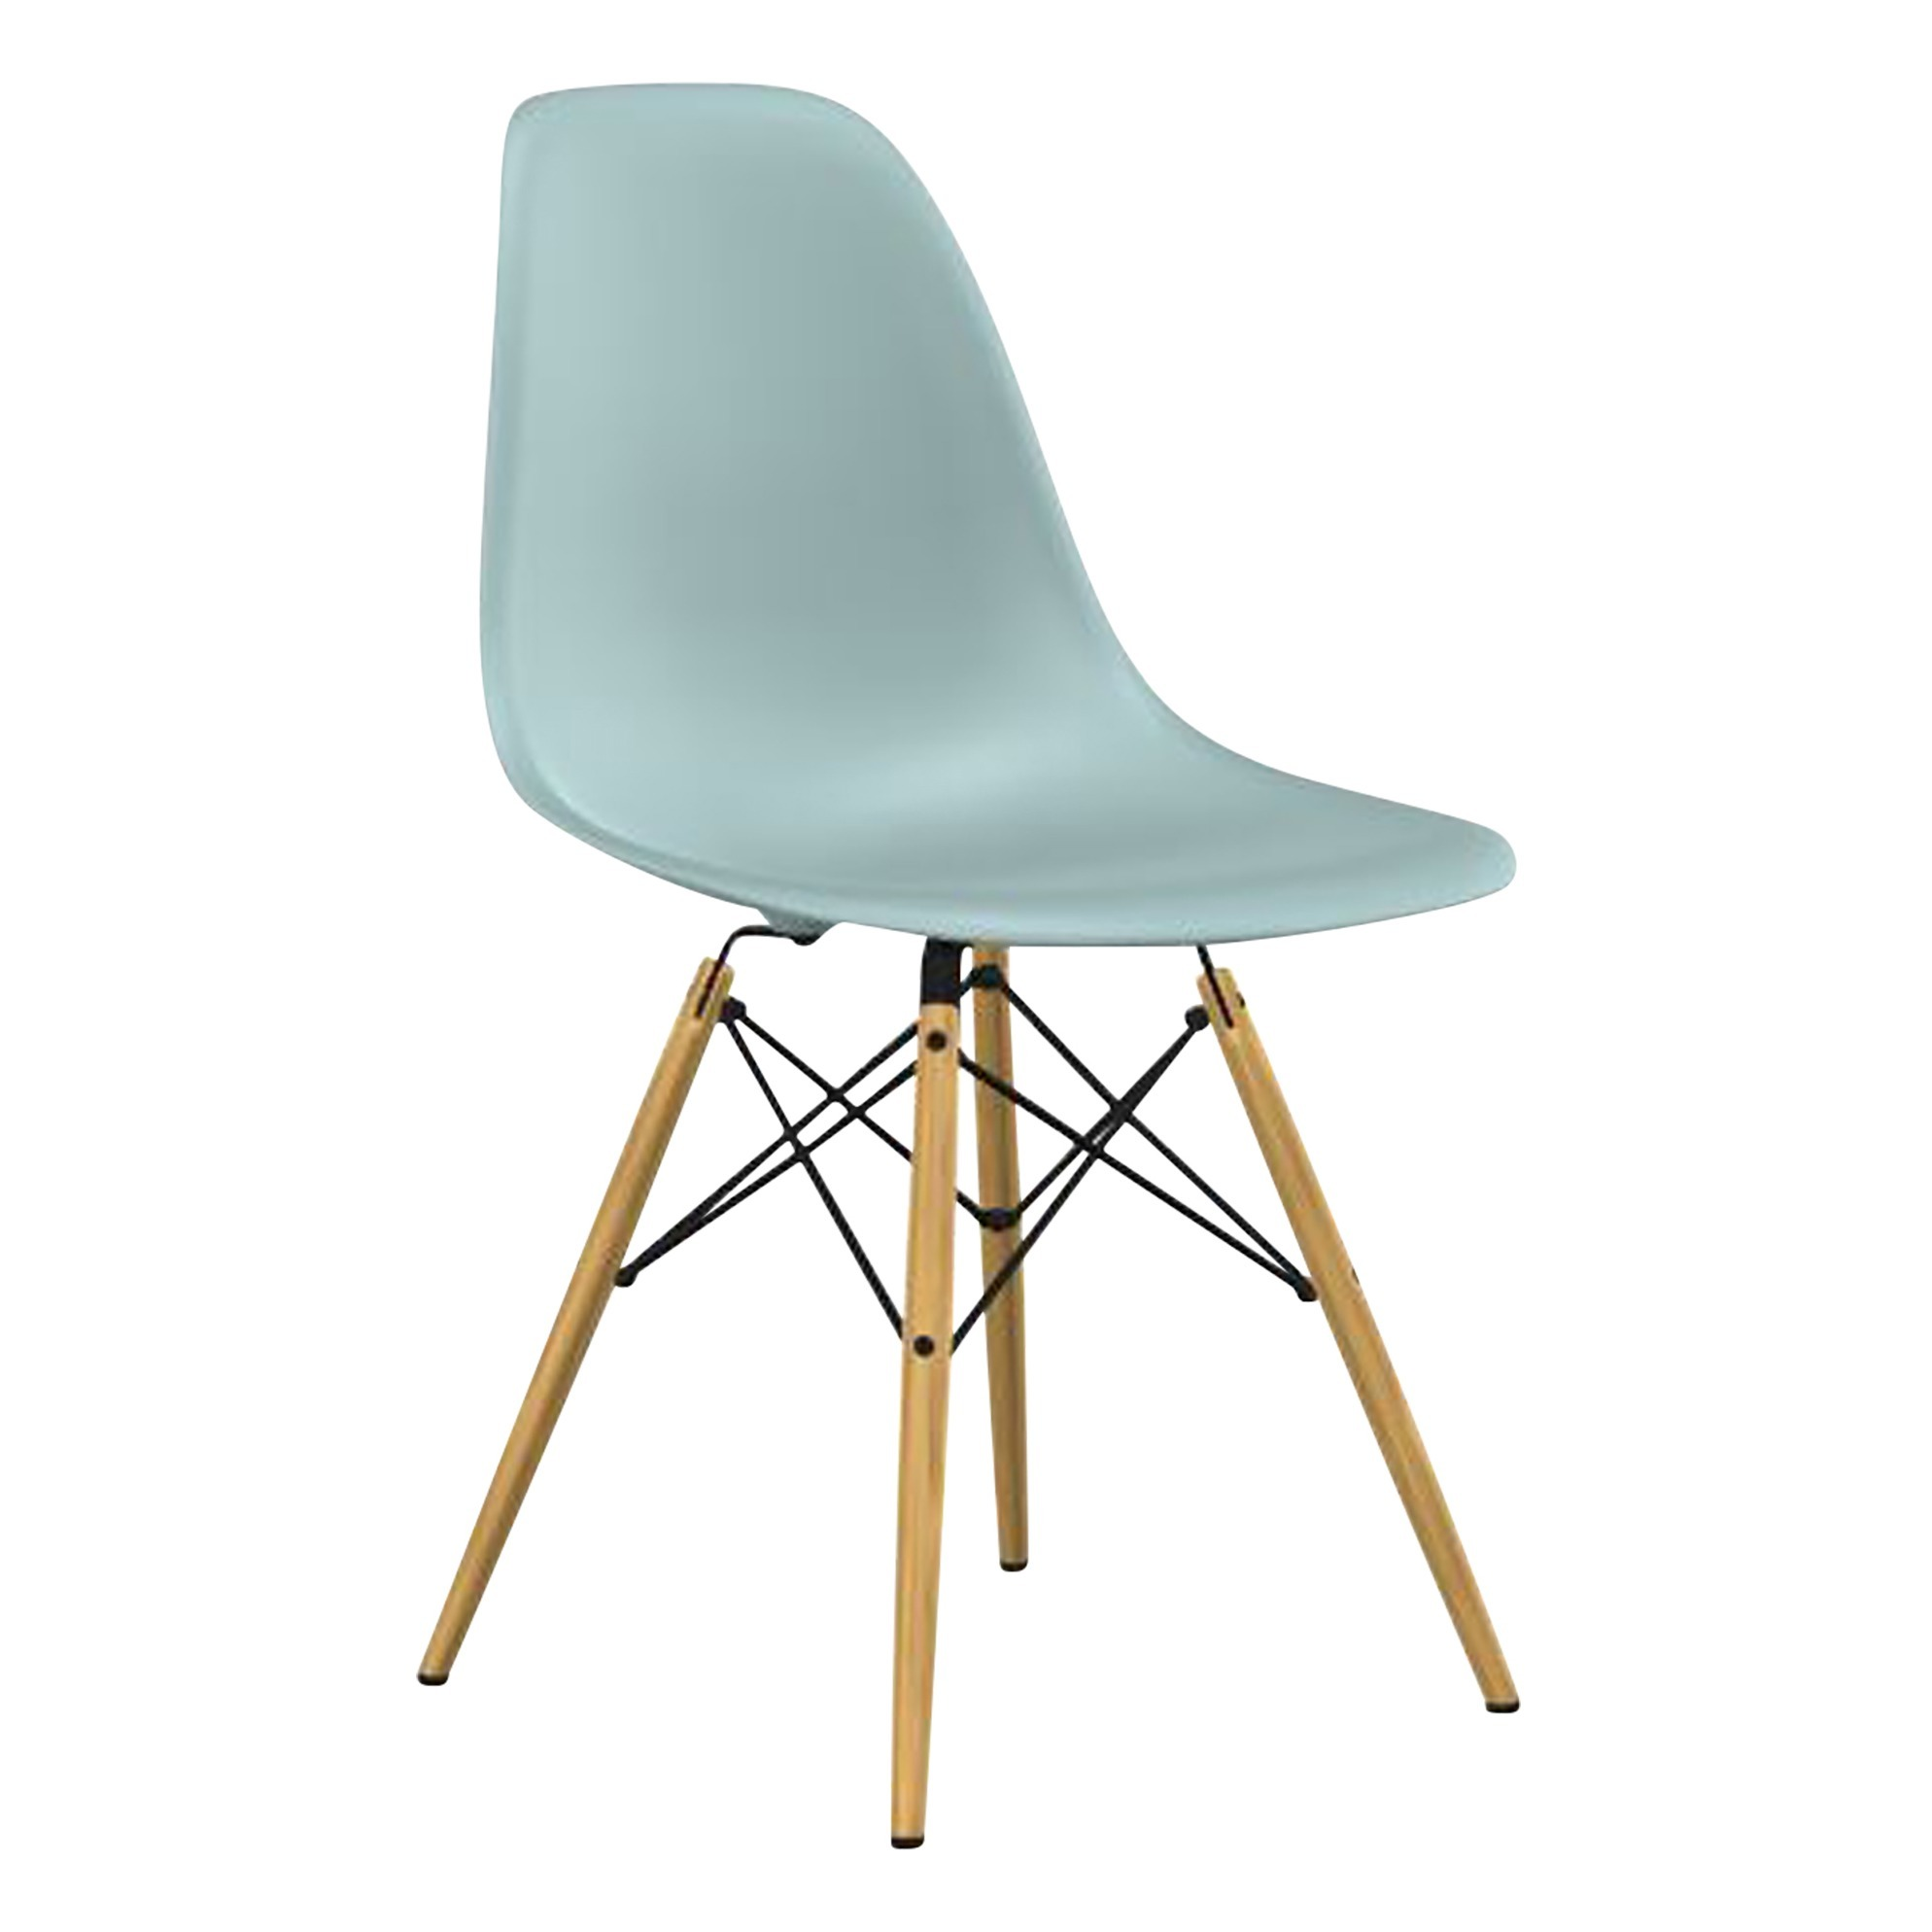 Eames DSW Chair Charles & Ray Eames, 1950 Grey blue Vitra